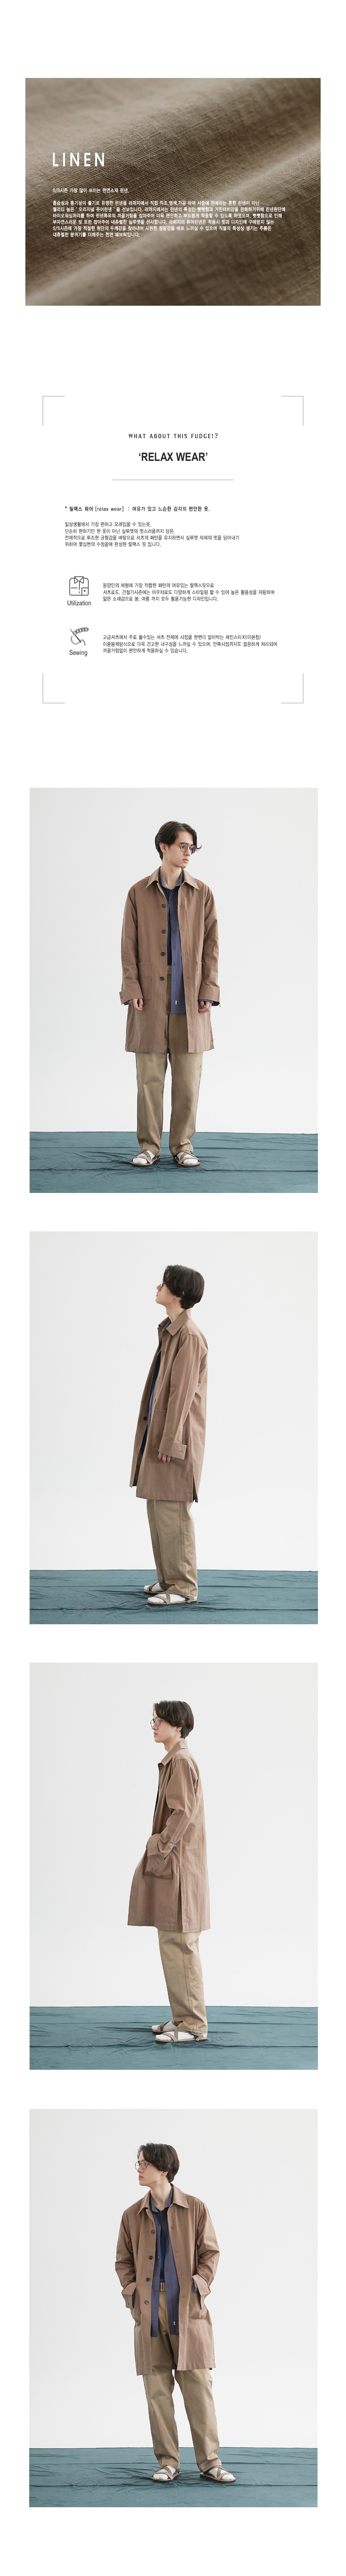 long_slip_solid_shirt_coat_01.jpg